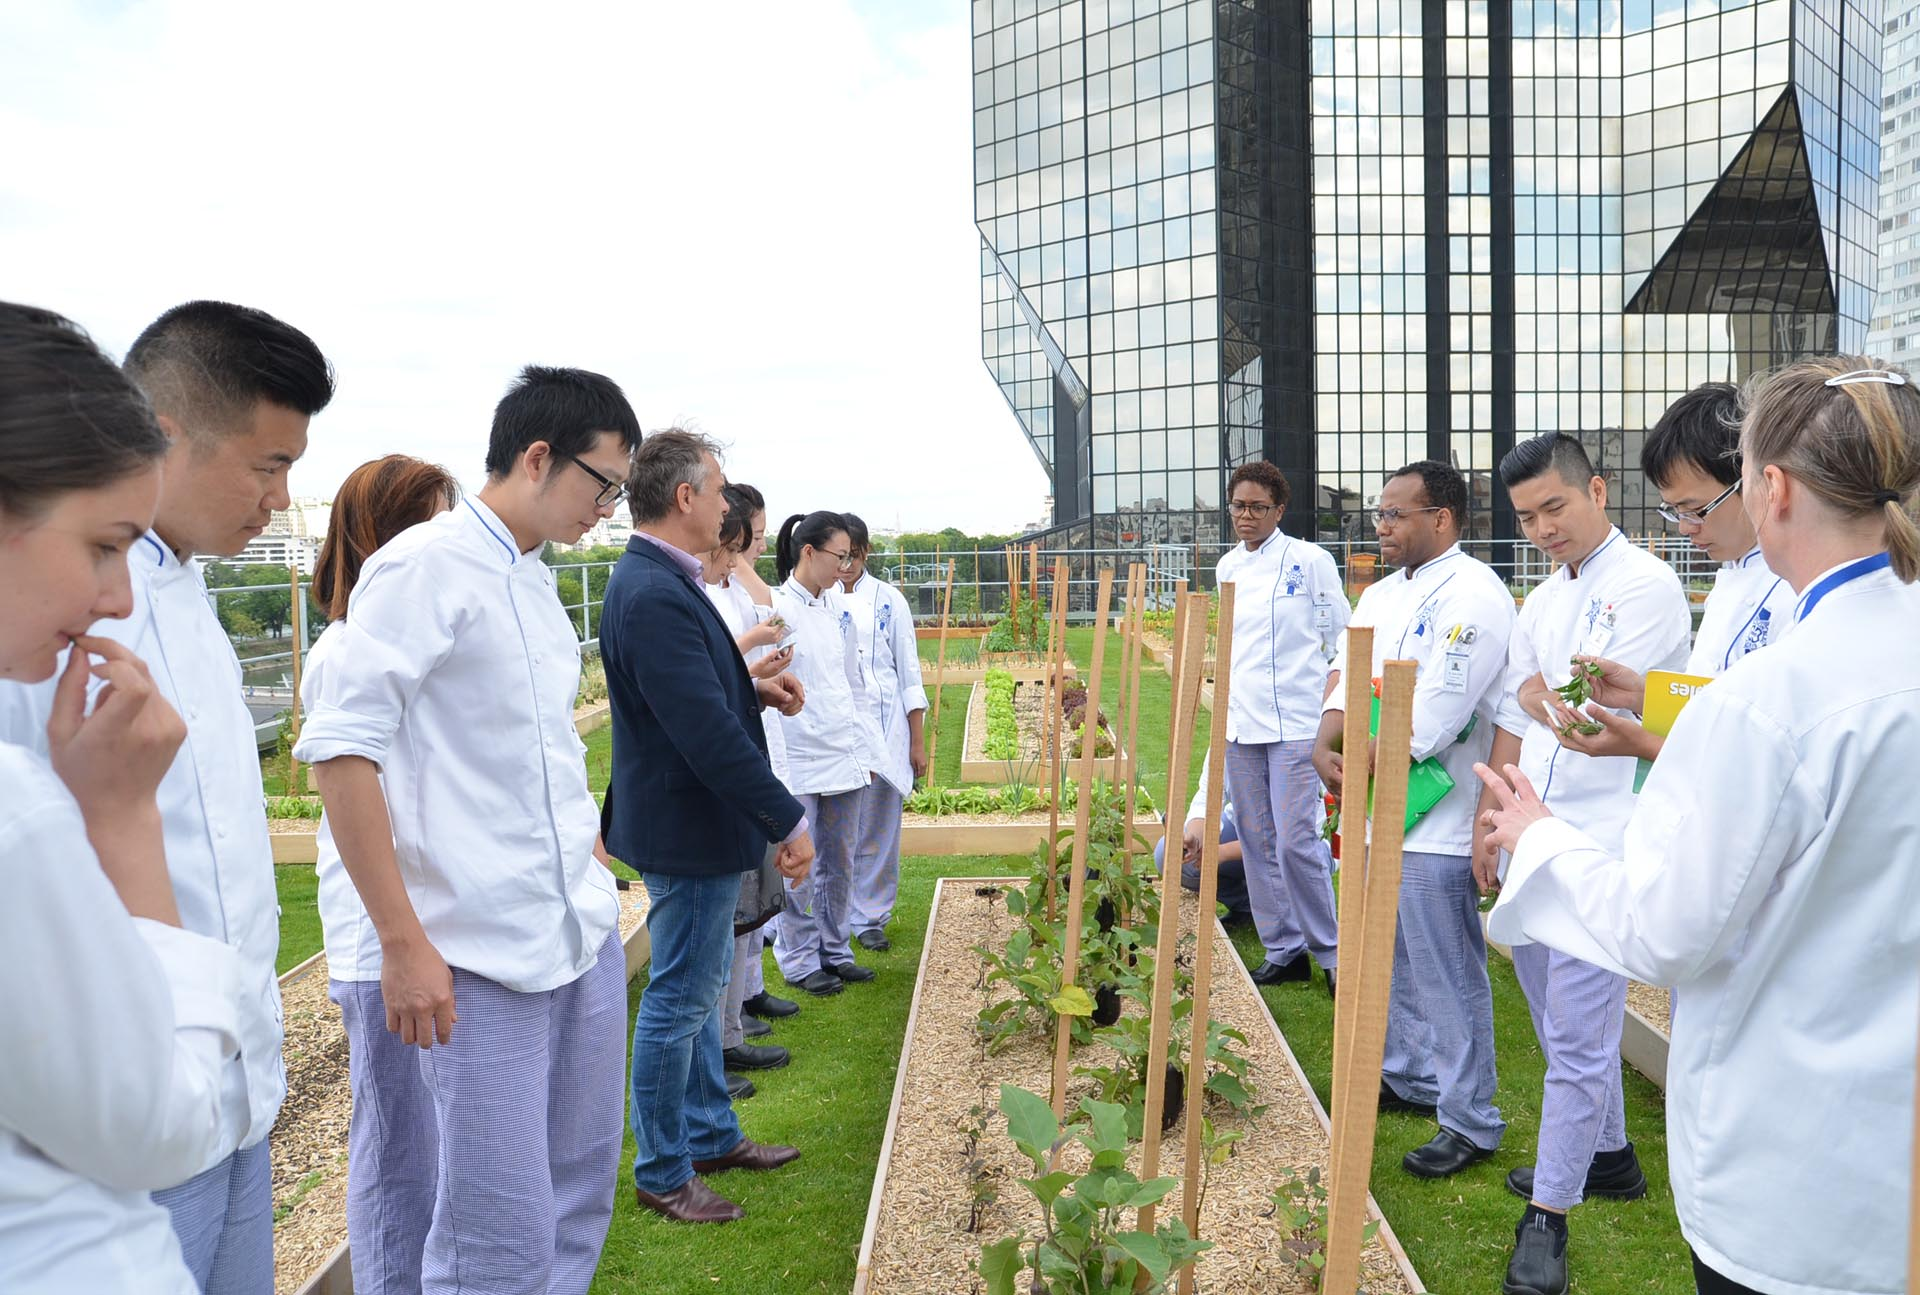 Vegetable garden lesson at Le Cordon Bleu Paris